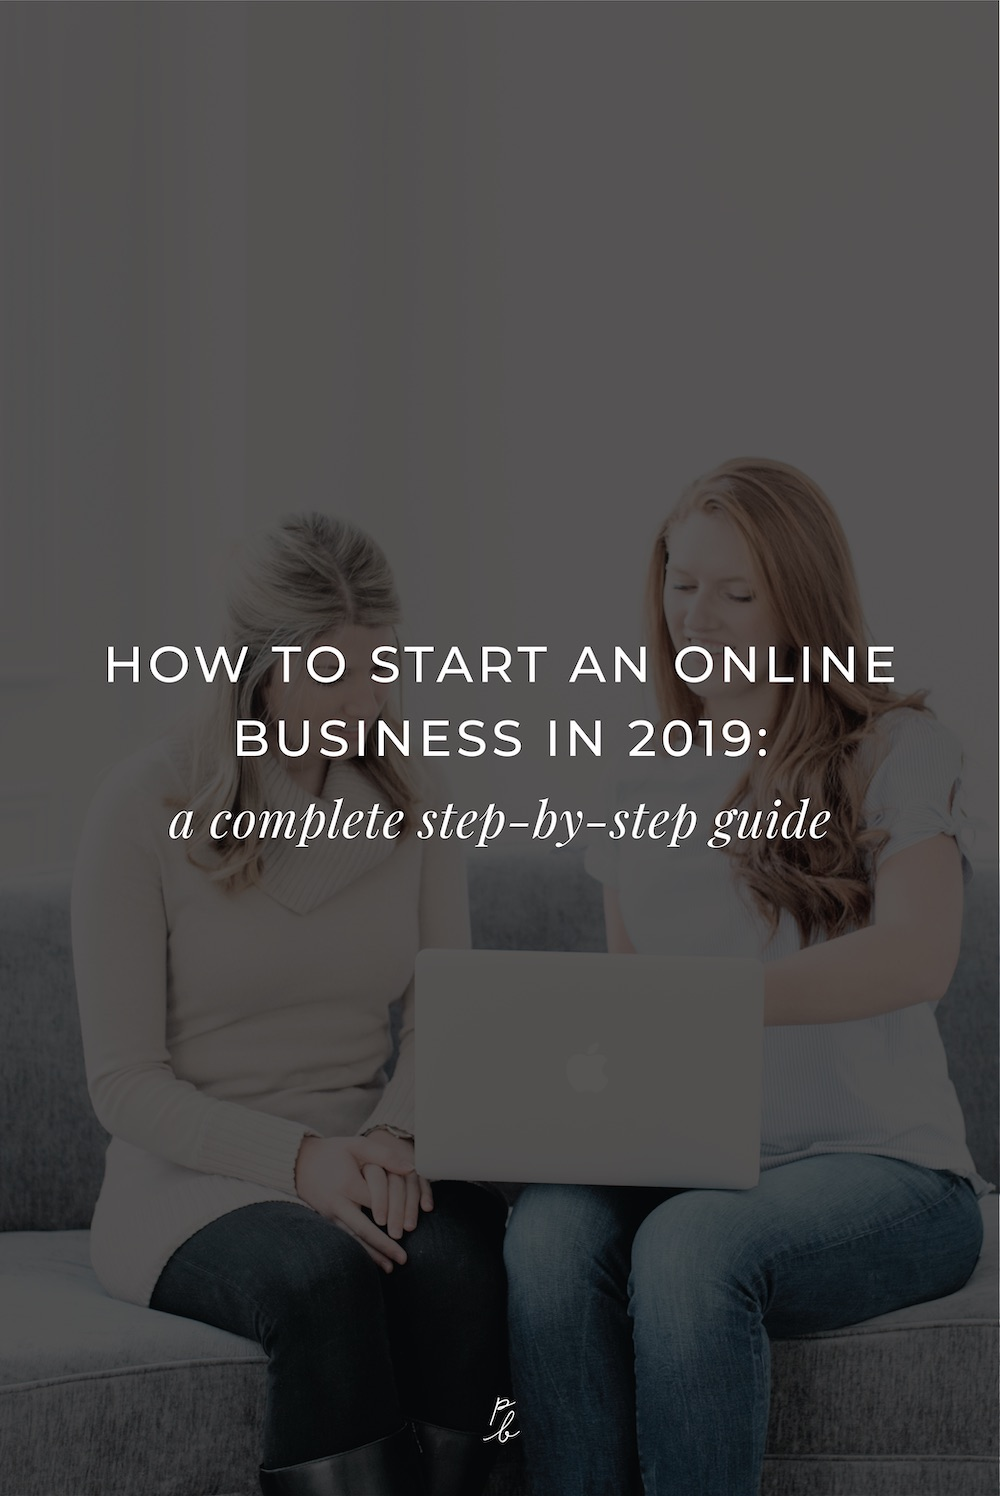 How to start an online business in 2019- a complete step by step guide.jpg